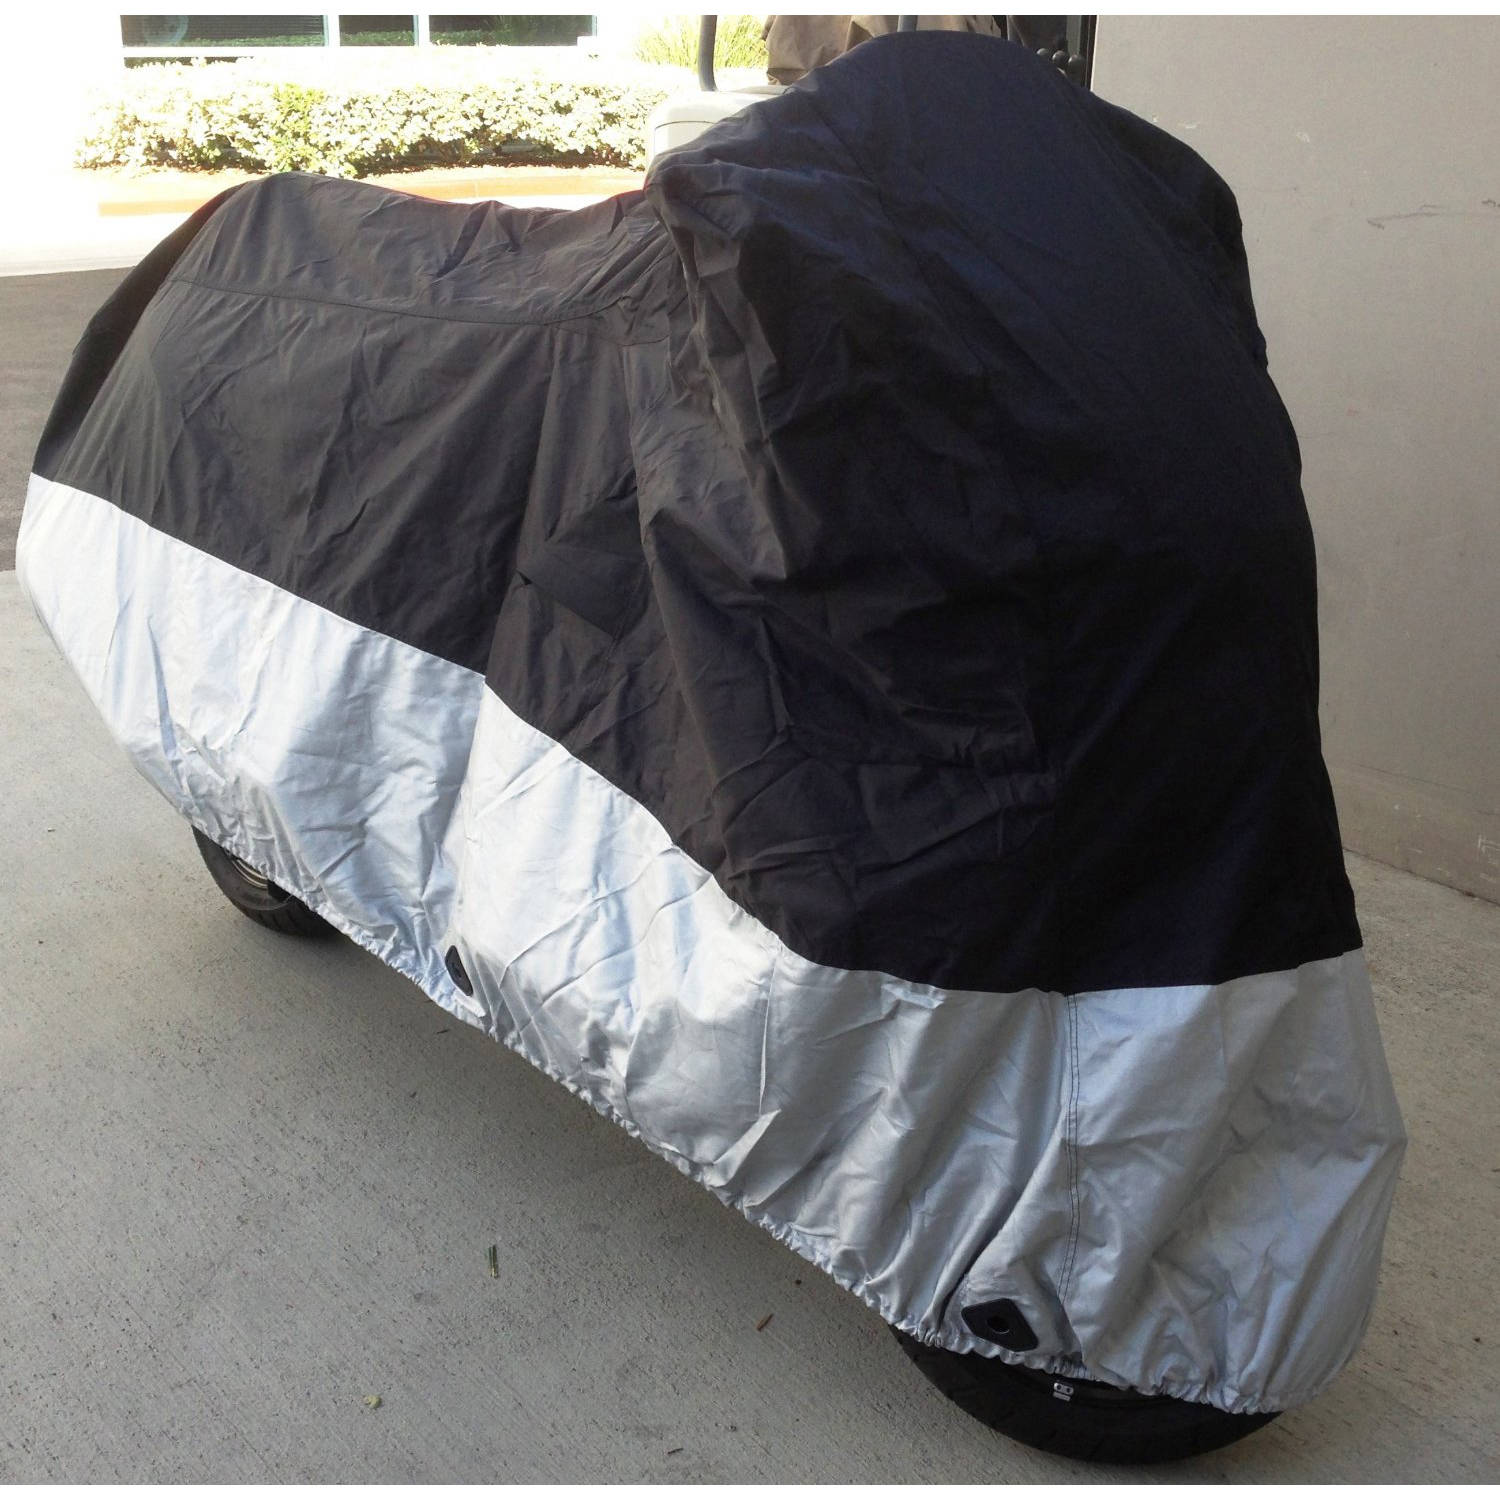 """Formosa Covers Heavy Duty Motorcycle cover (L) with cable & lock. Fits up to 84"""" length sport bike, dirt bike, small cruiser"""